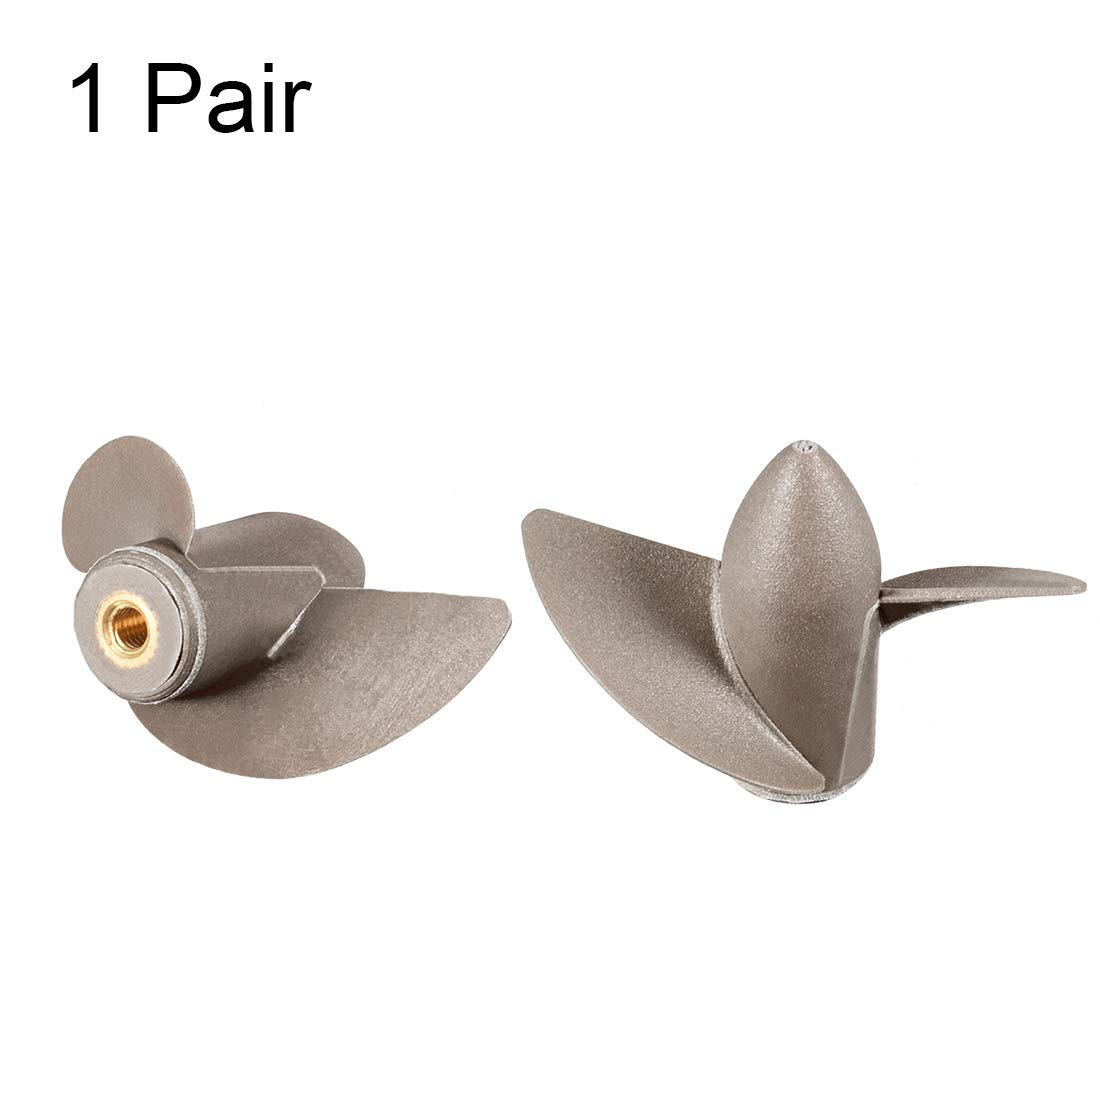 uxcell RC Boat Propeller M4 Shaft 2 Vanes 35mm 25mm P//D Fan Shape Copper Core Pastic Black CW CCW Rotating Propeller Props for RC Boat 1 Pair